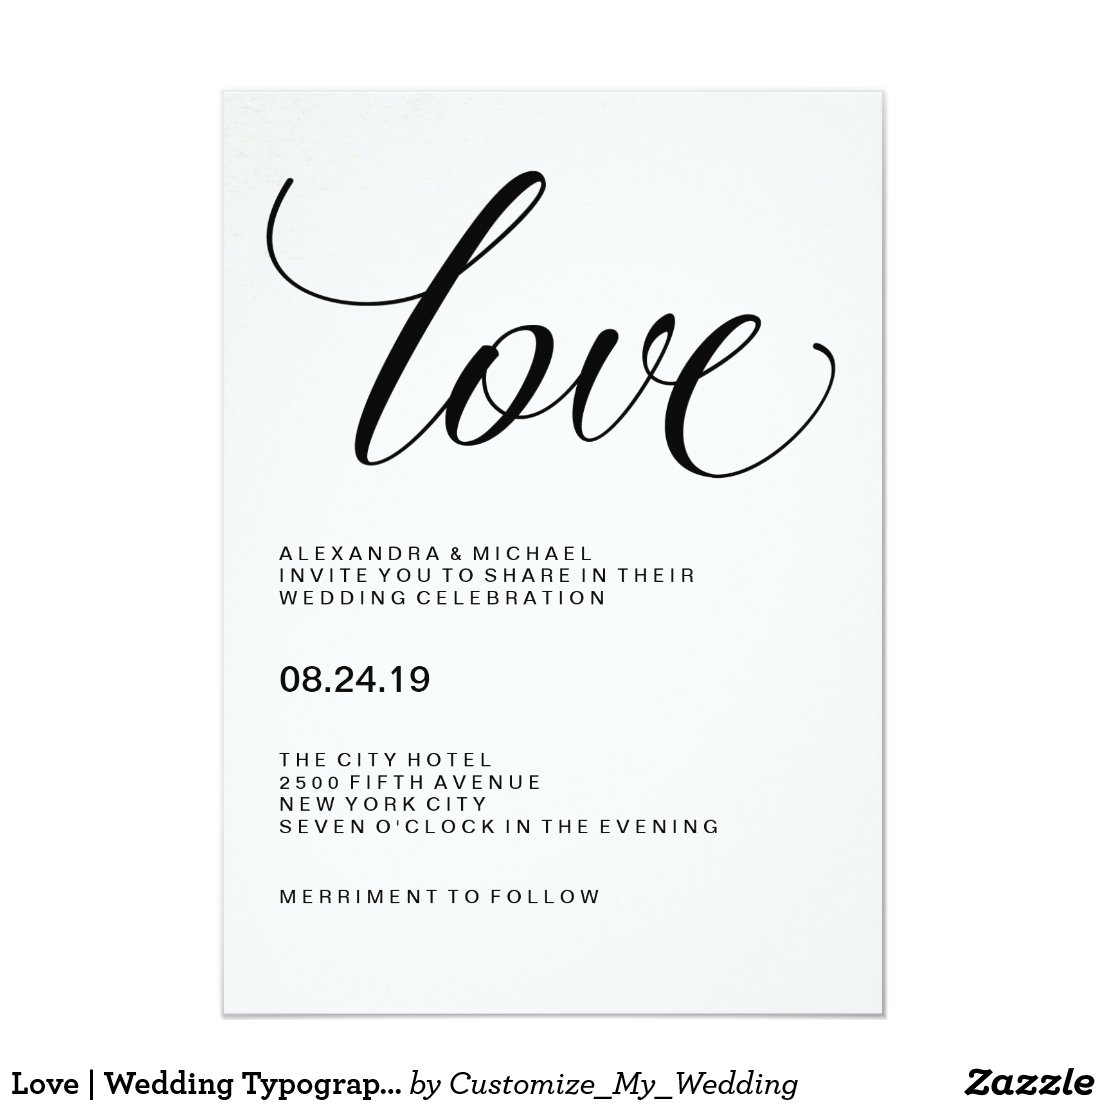 Love | Wedding Typography on Watercolor Paper Invitation